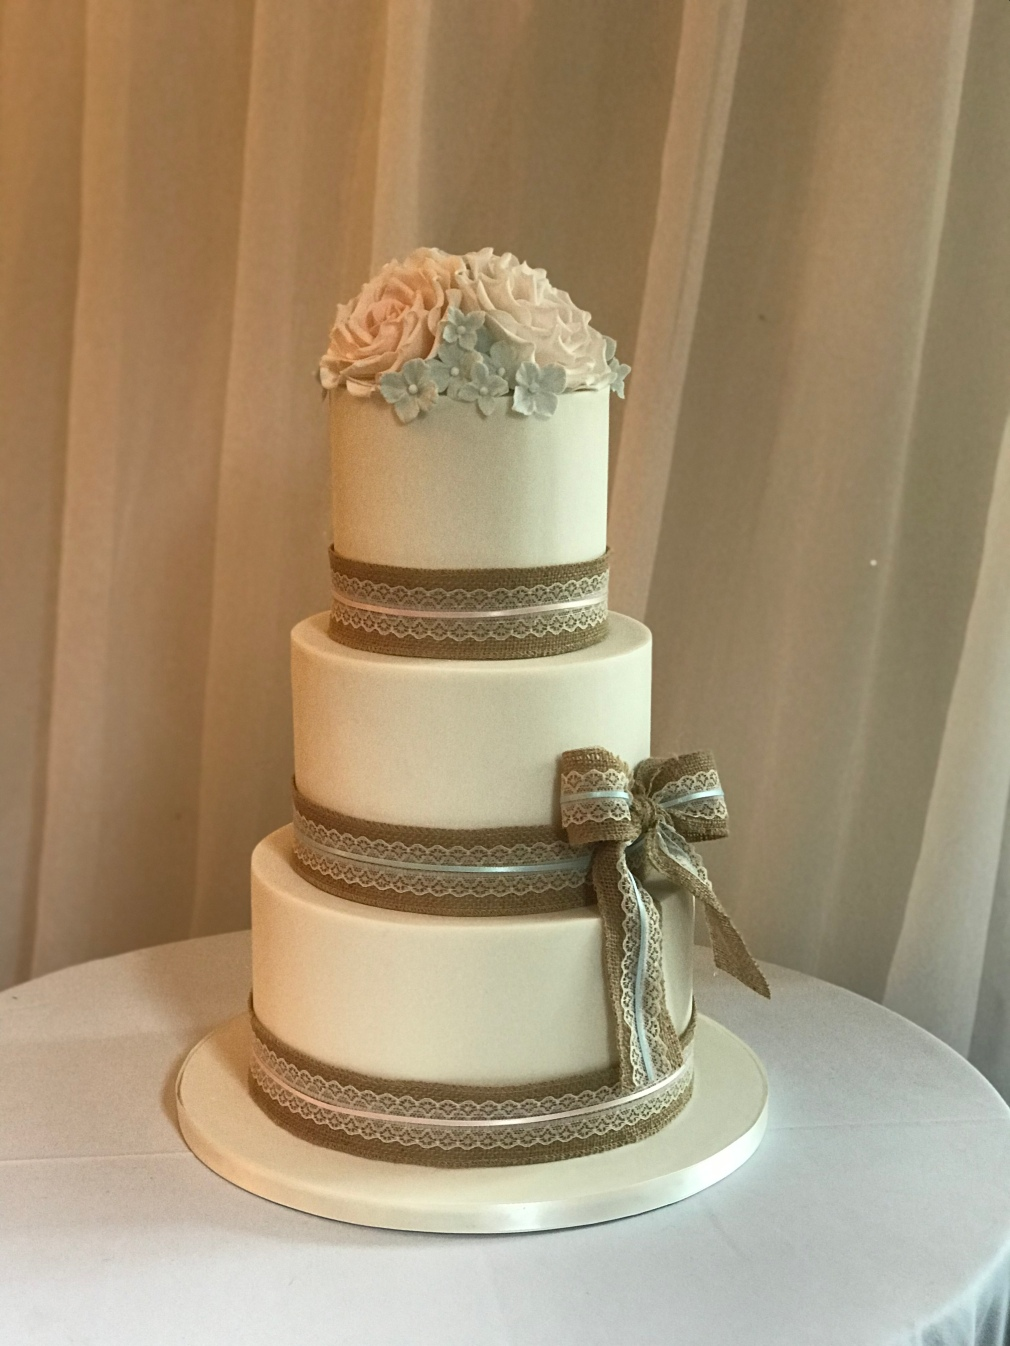 Rustic Wedding Cake at Manor Parc Hotel, Cardiff